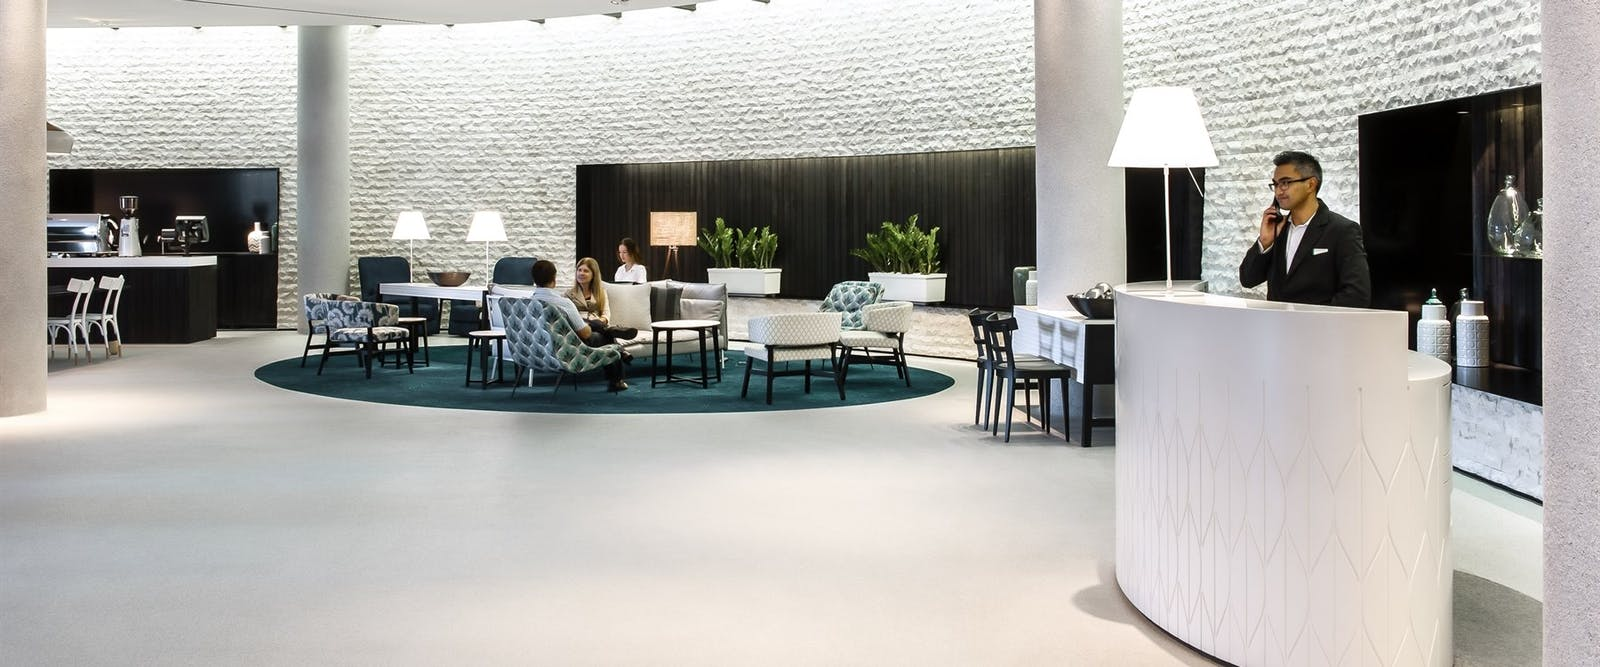 Hotel lobby at Parkroyal Darling Harbour, Australia